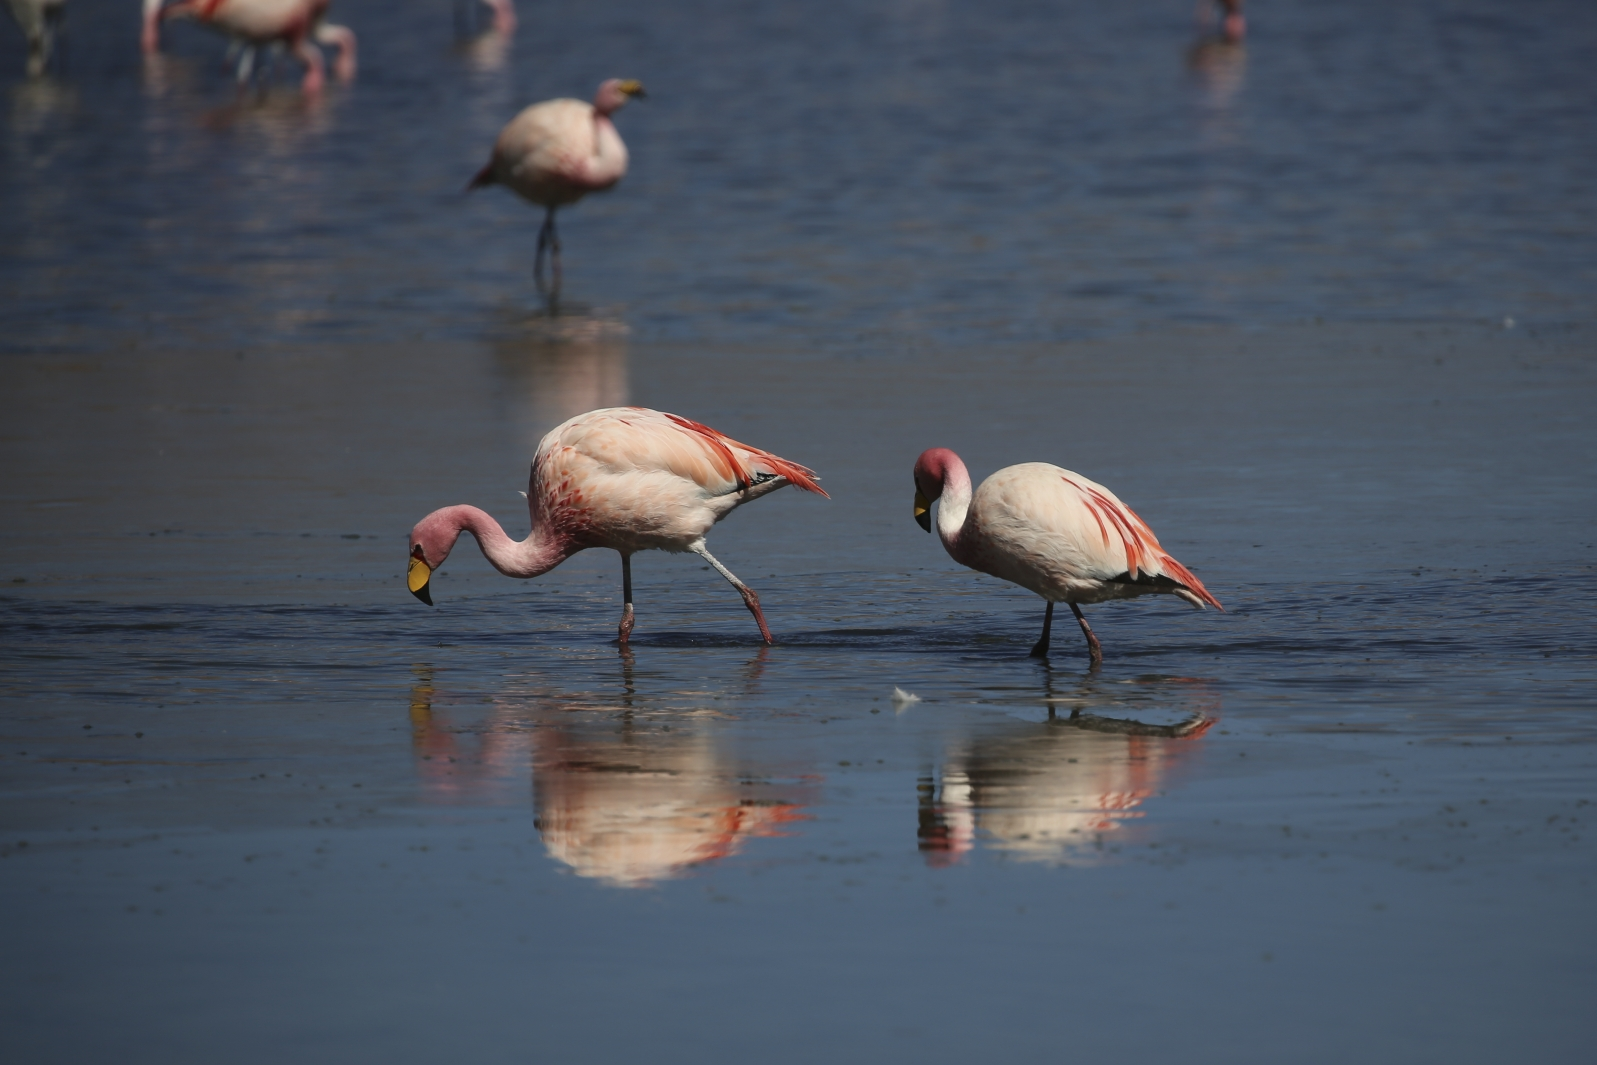 Nationalpark Evora - Flamingos an der Laguna Hedionda